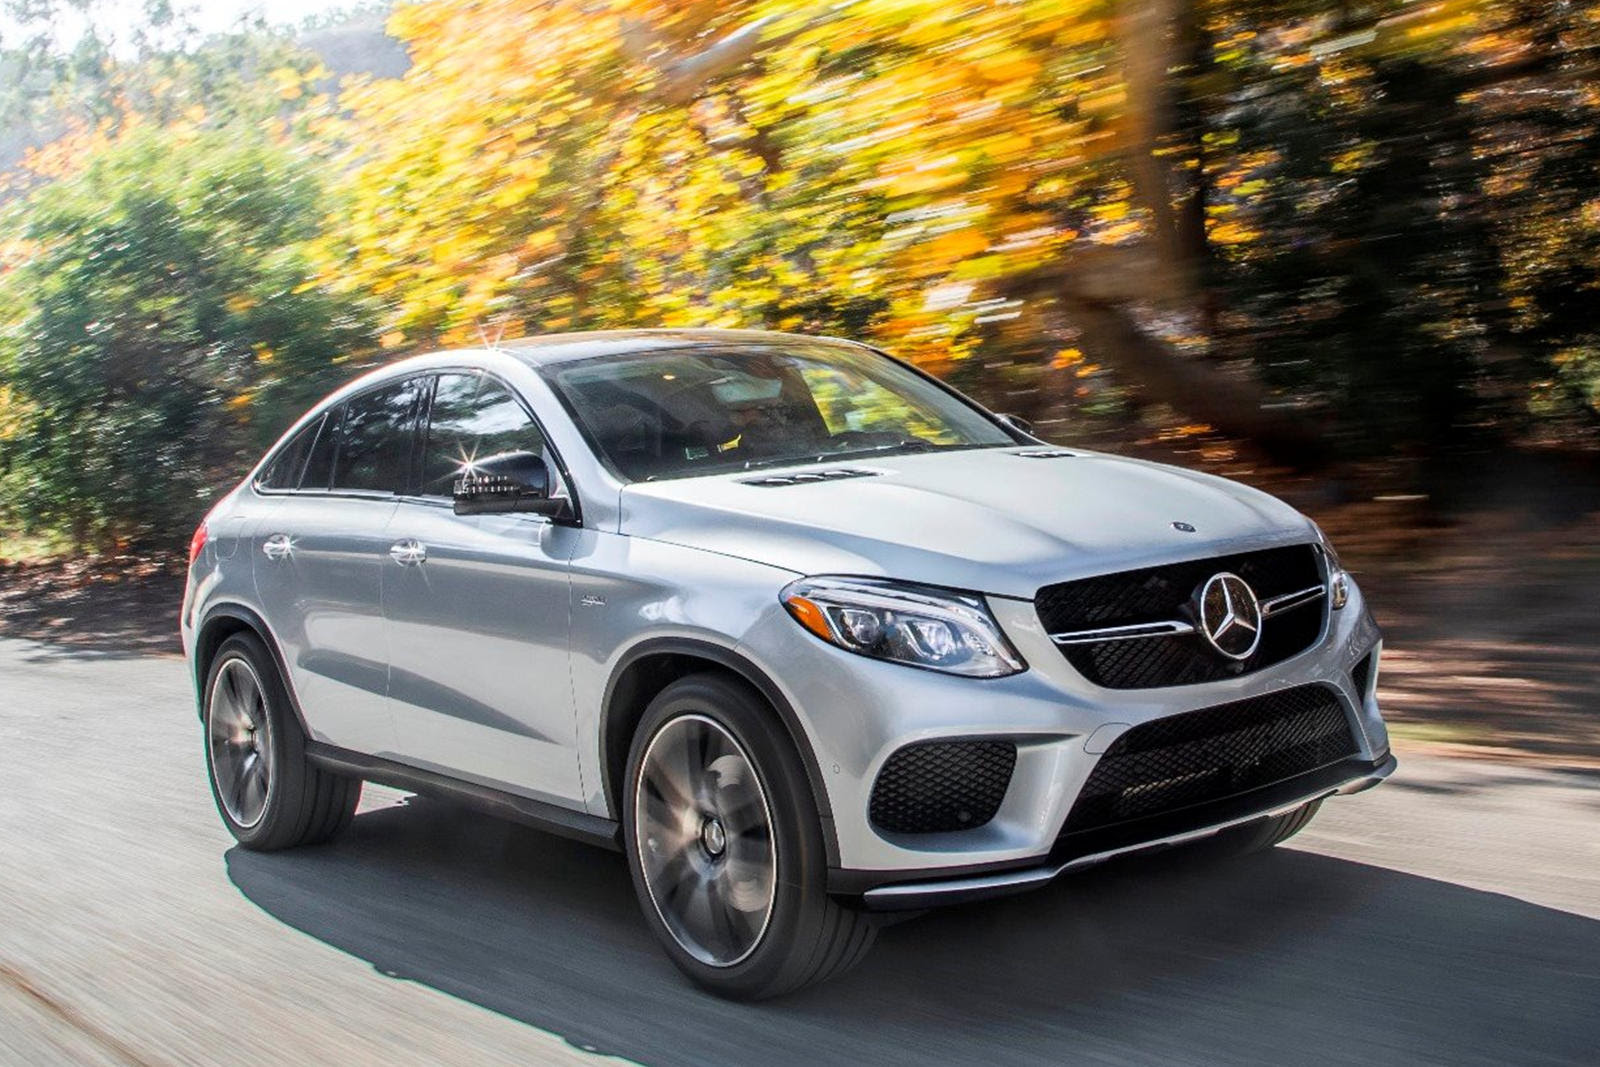 2018 Mercedes Amg Gle 43 Coupe Review Trims Specs Price New Interior Features Exterior Design And Specifications Carbuzz